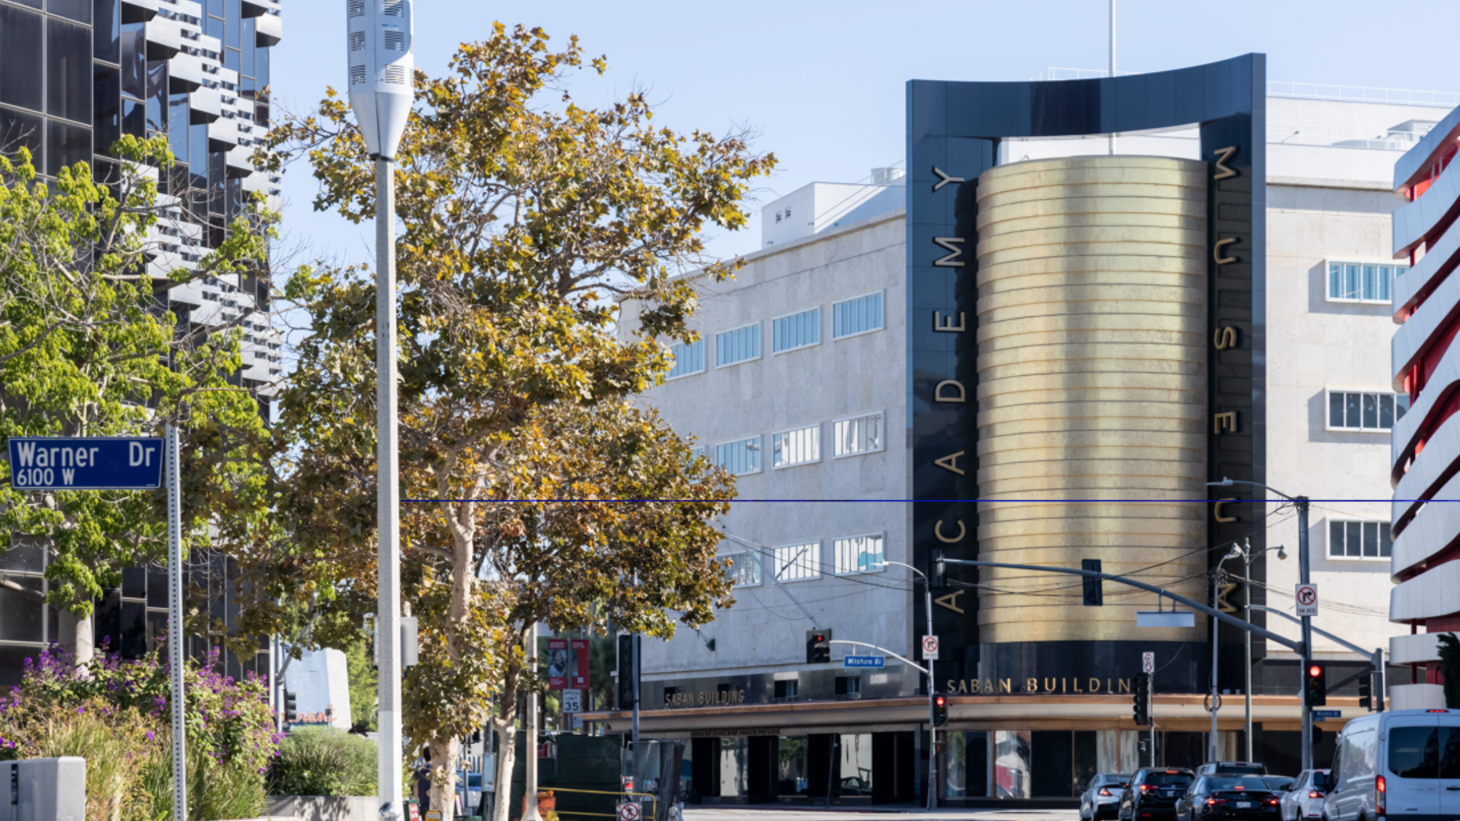 The Academy Museum of Motion Pictures pairs old and new construction at Wilshire Blvd. and Fairfax Ave.